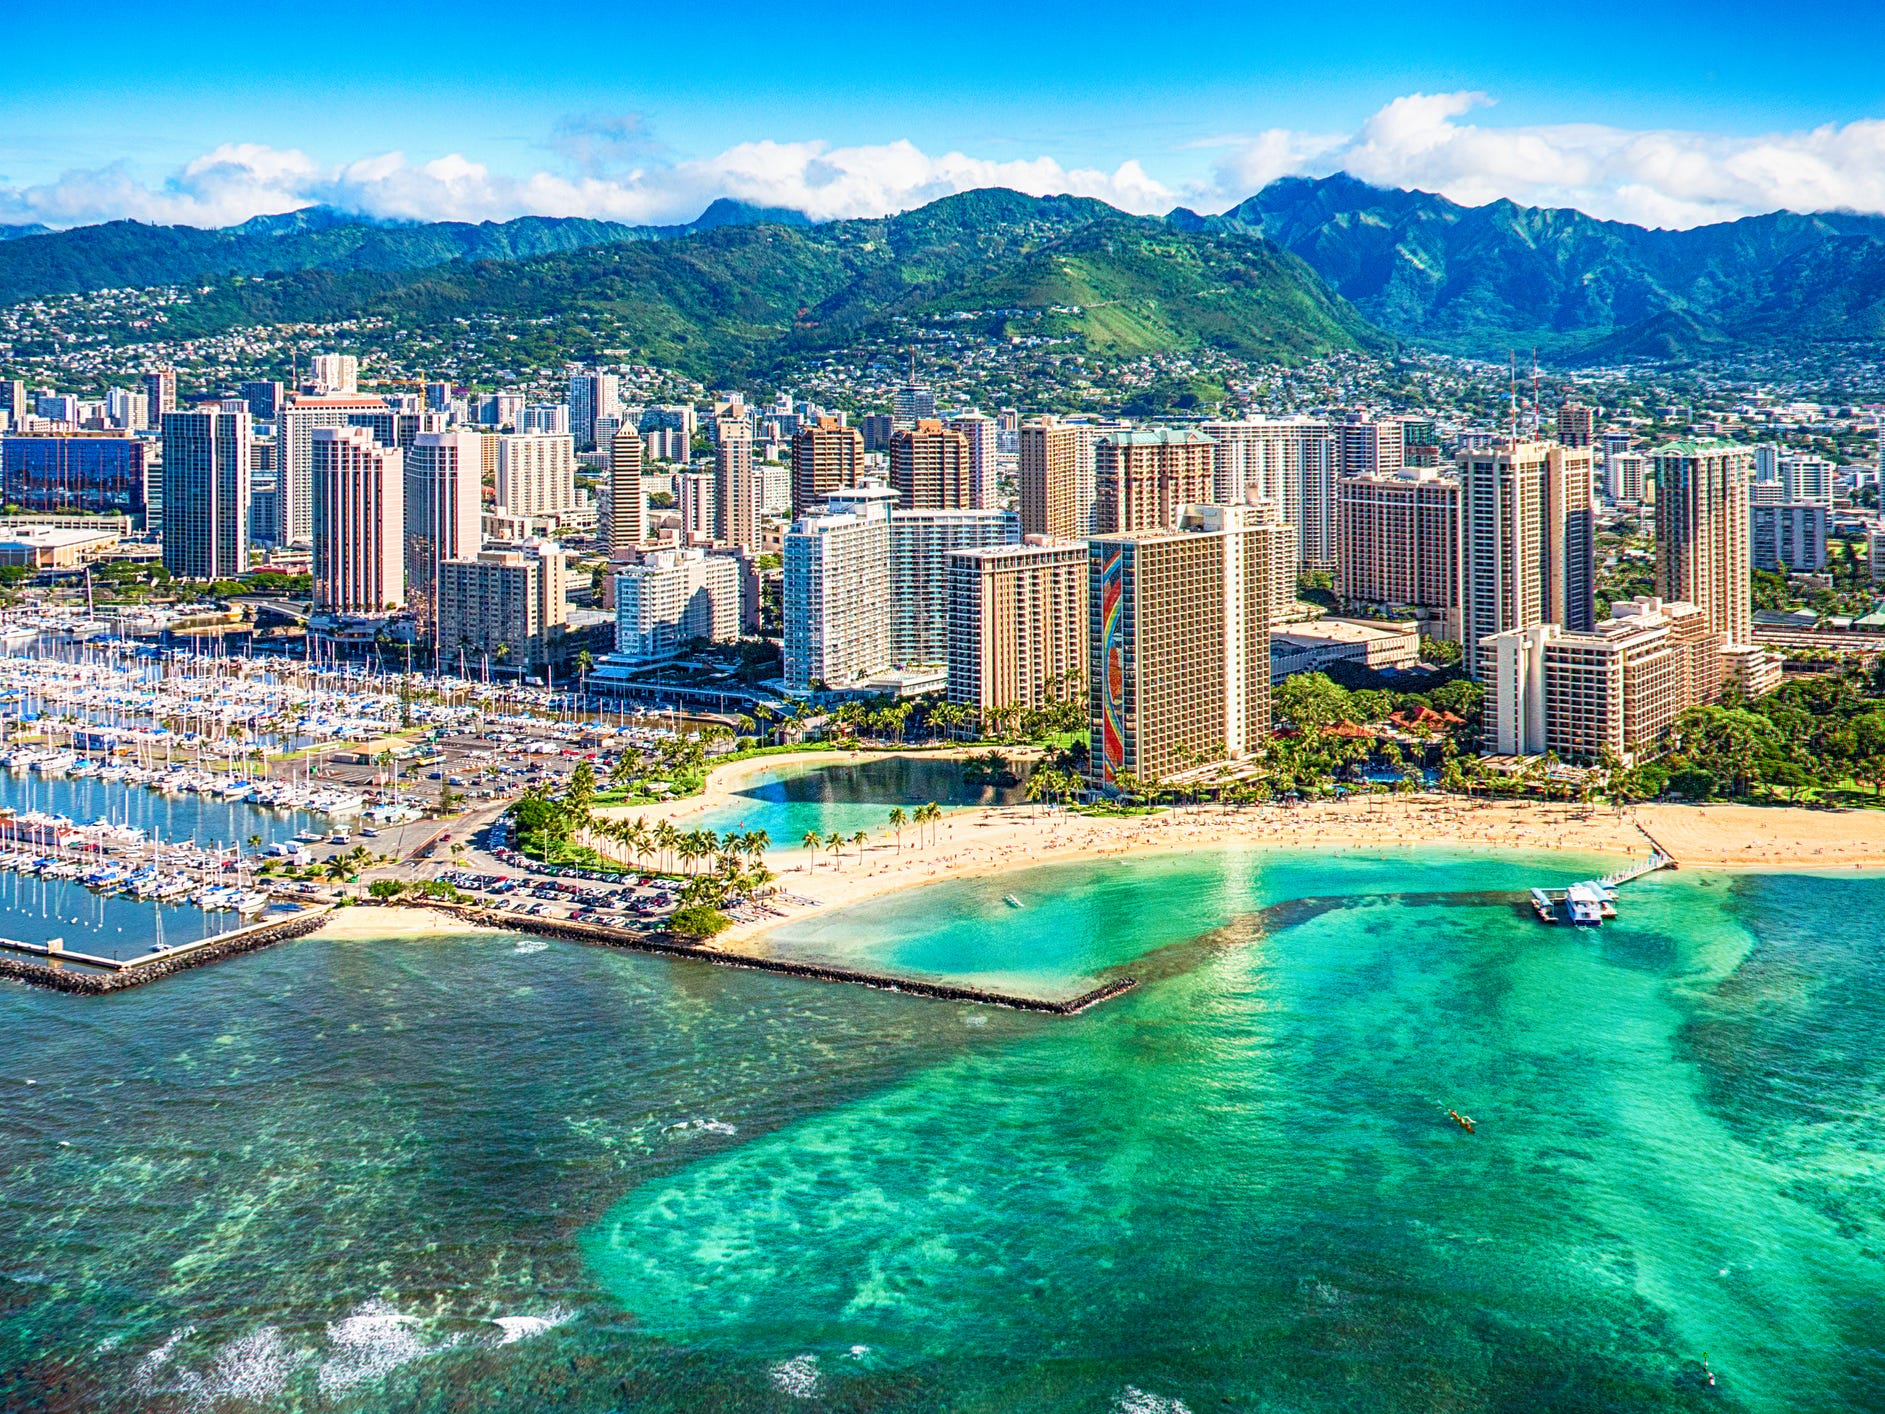 Hawaii is still cheaper than it has been in years past, especially for the spring, so make sure to set a deal alert on Airfarewatchdog if an affordable spring break trip to Hawaii is on your radar. Fares for spring travel are as low as $500 round trip from places like Atlanta, Austin, Baltimore and Boston.